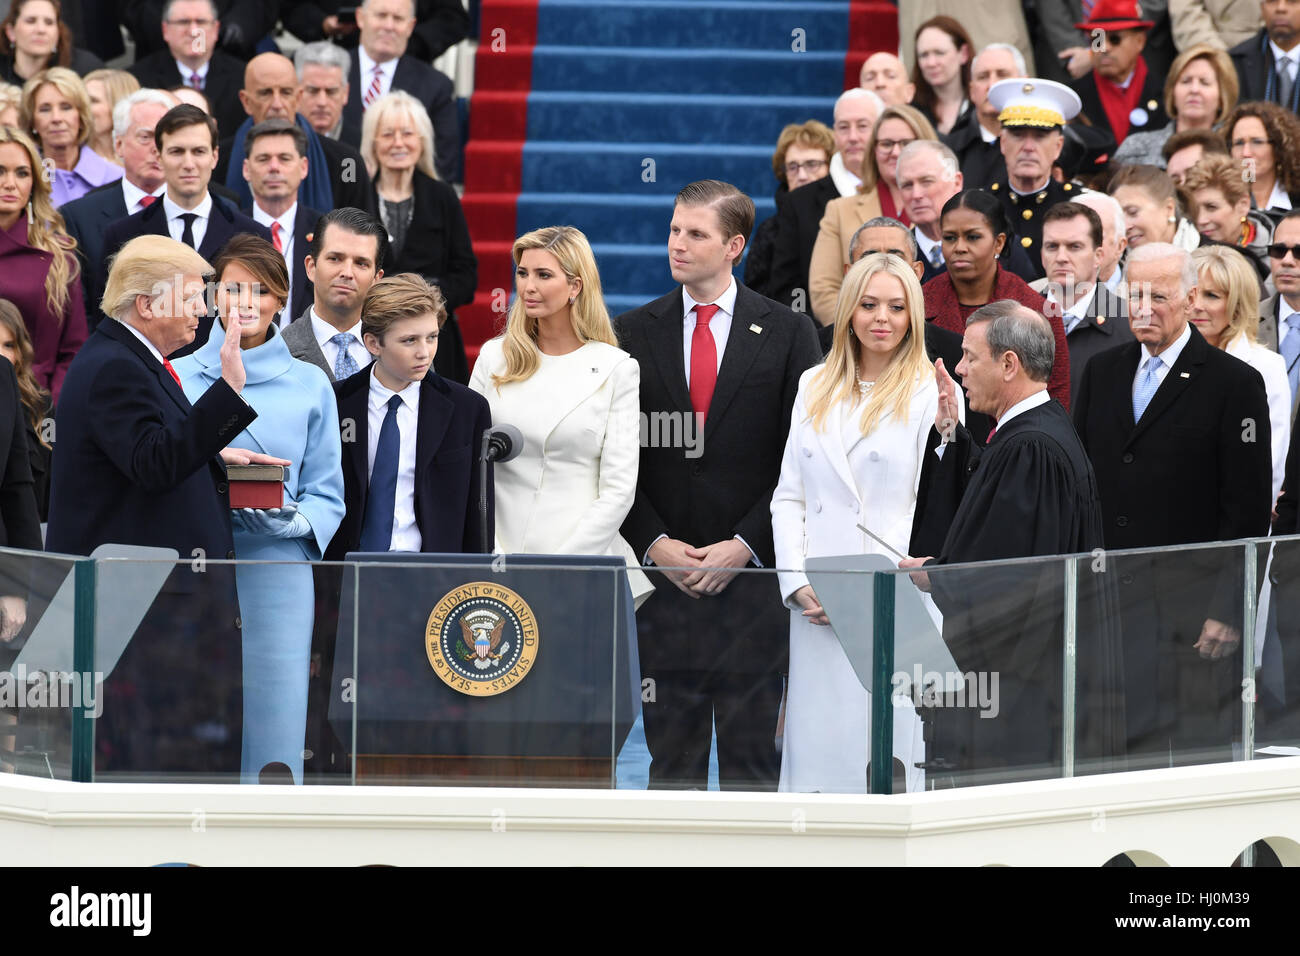 President Donald J. Trump takes the Oath of Office from Chief Justice John Roberts at his inauguration on January Stock Foto